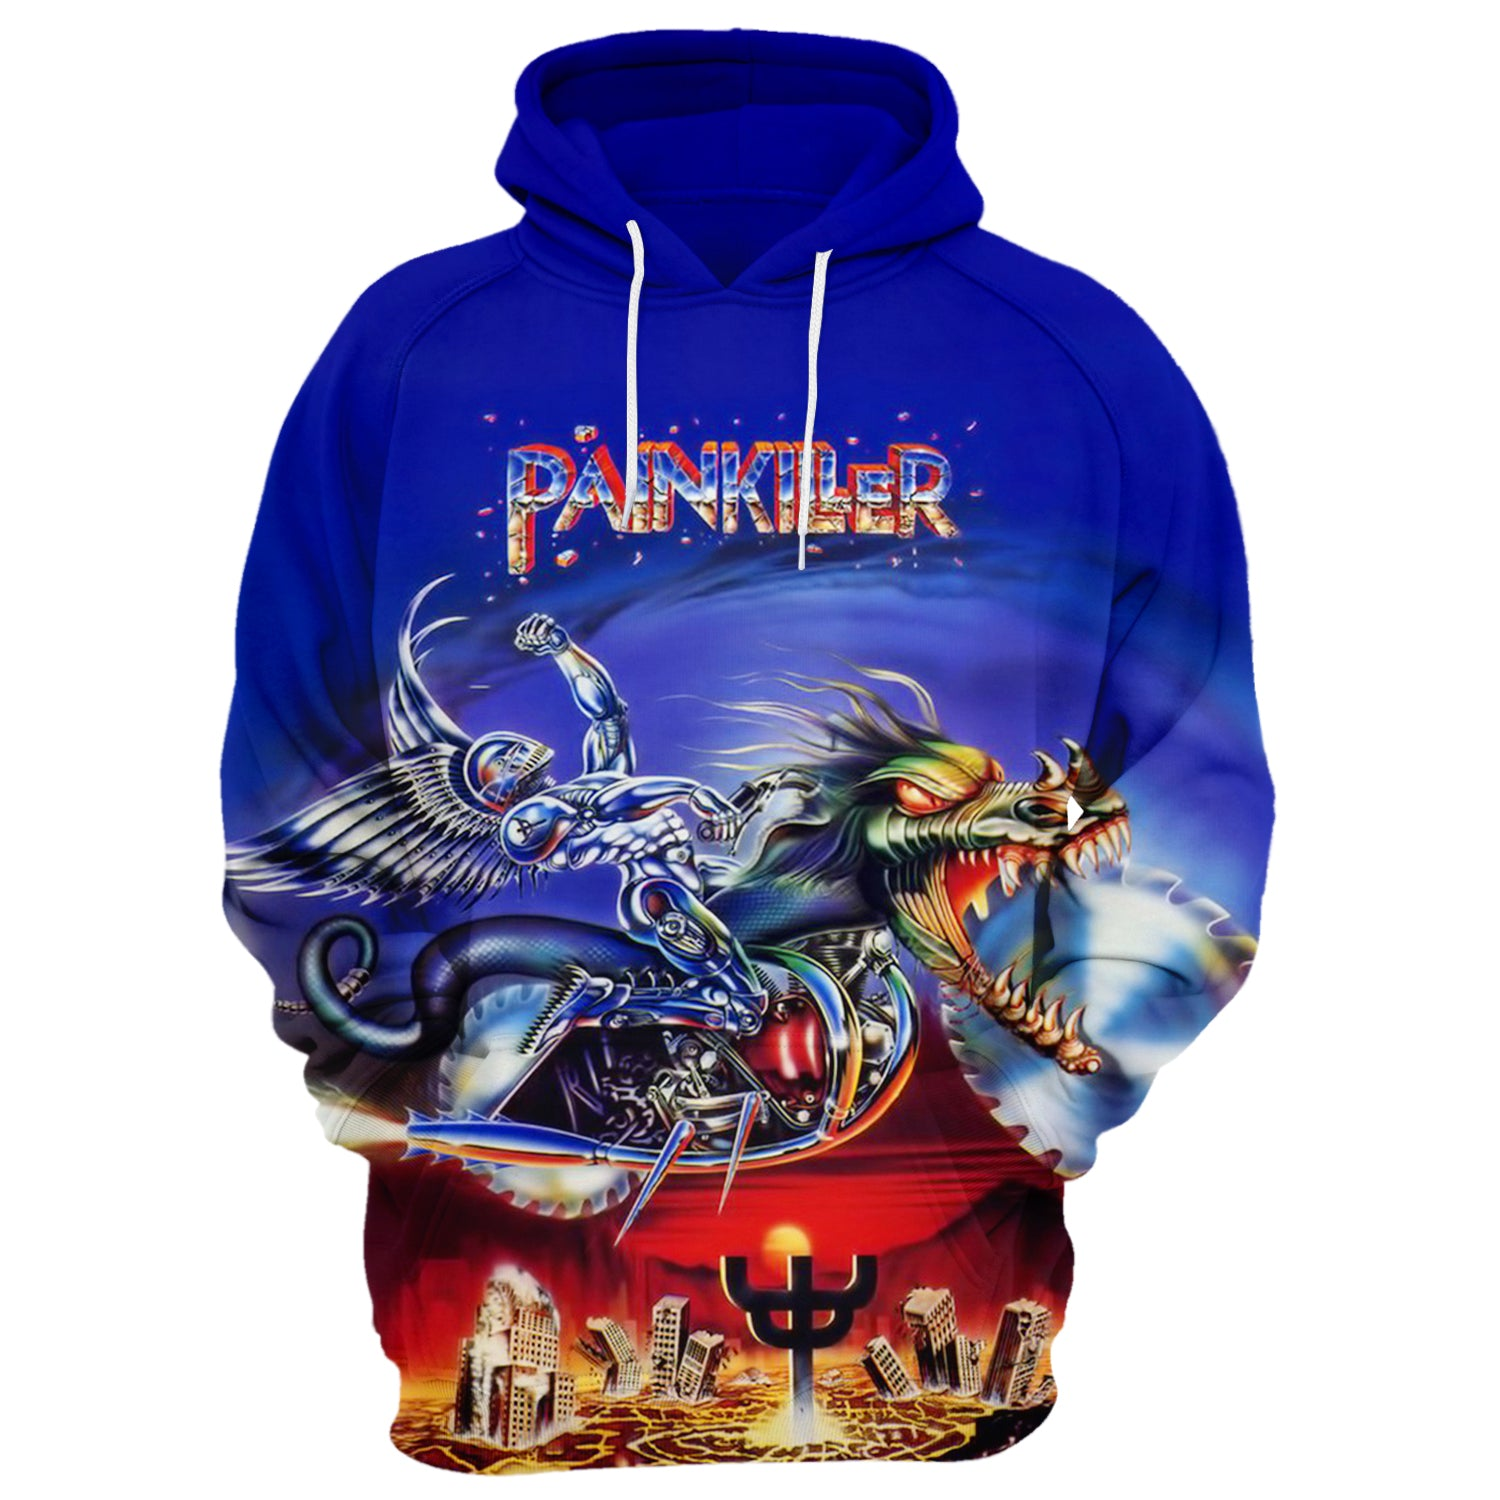 Judas Priest Limited Edition Hoodies & Tees